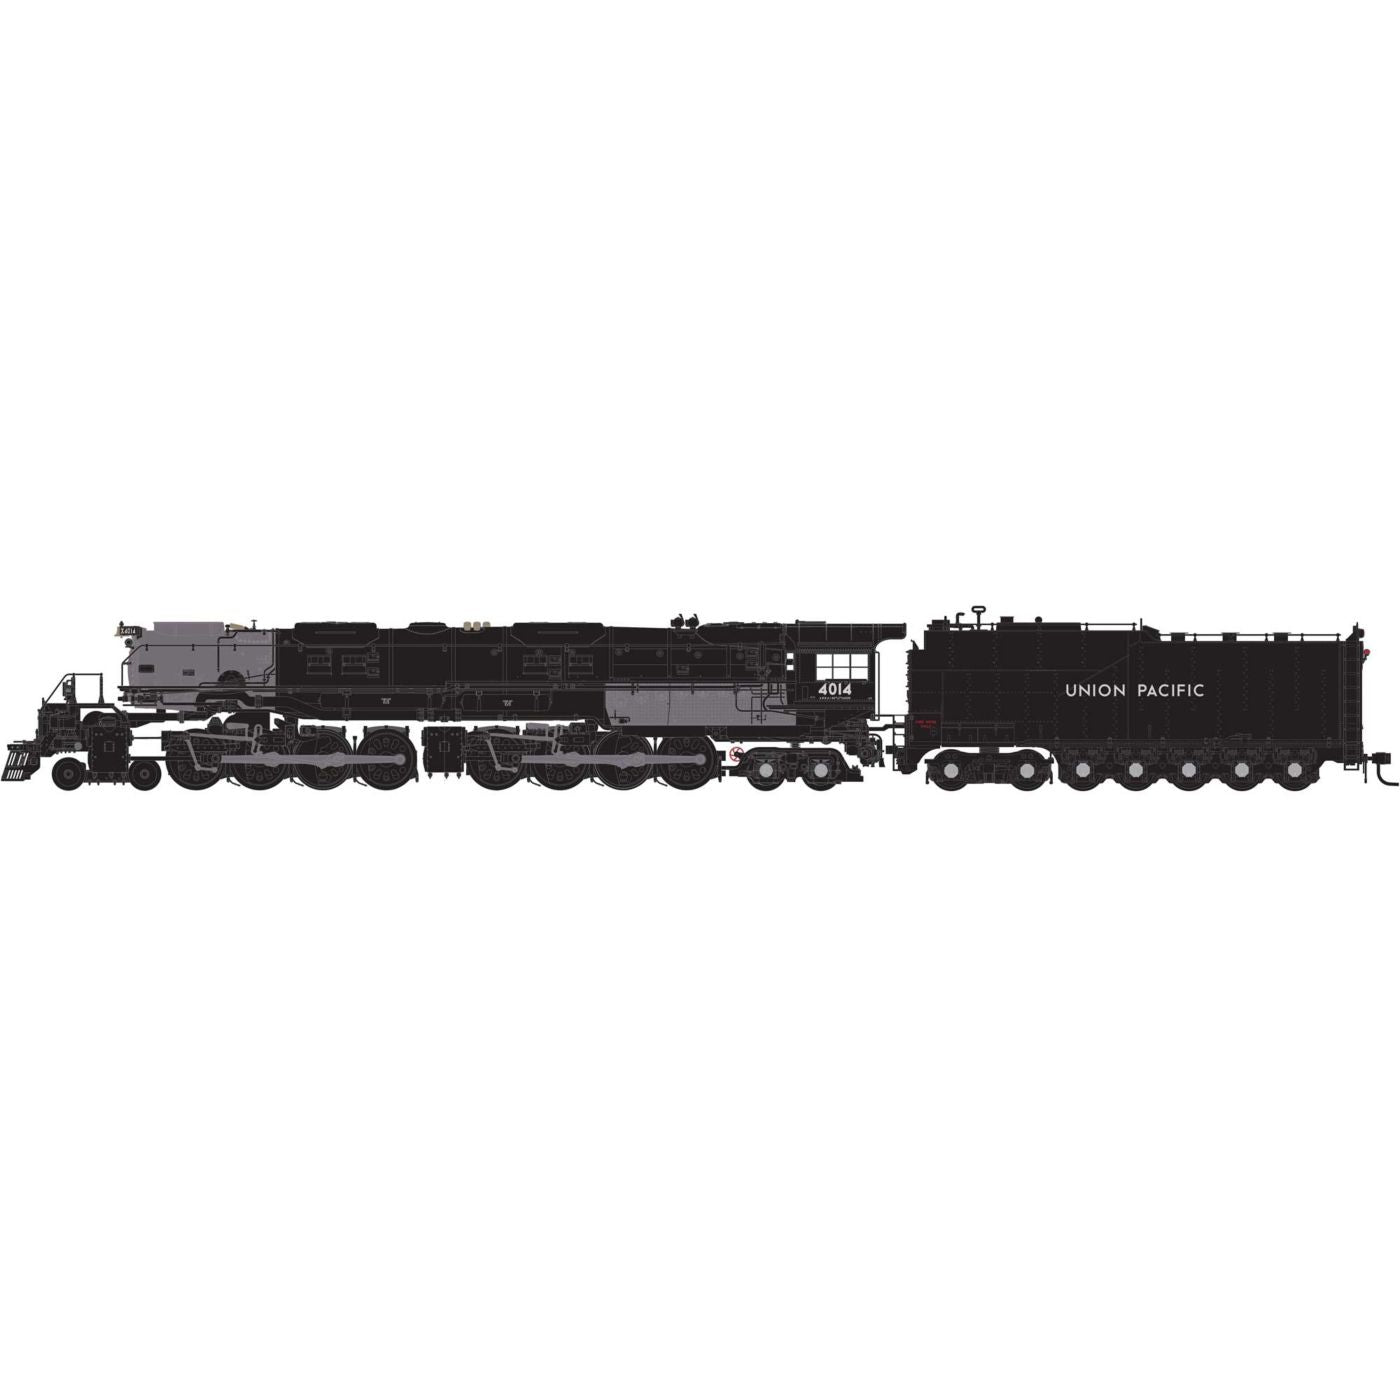 Athearn Genesis HO 4-8-8-4 Big Boy UP Promontory, #4014 DCC/Sound